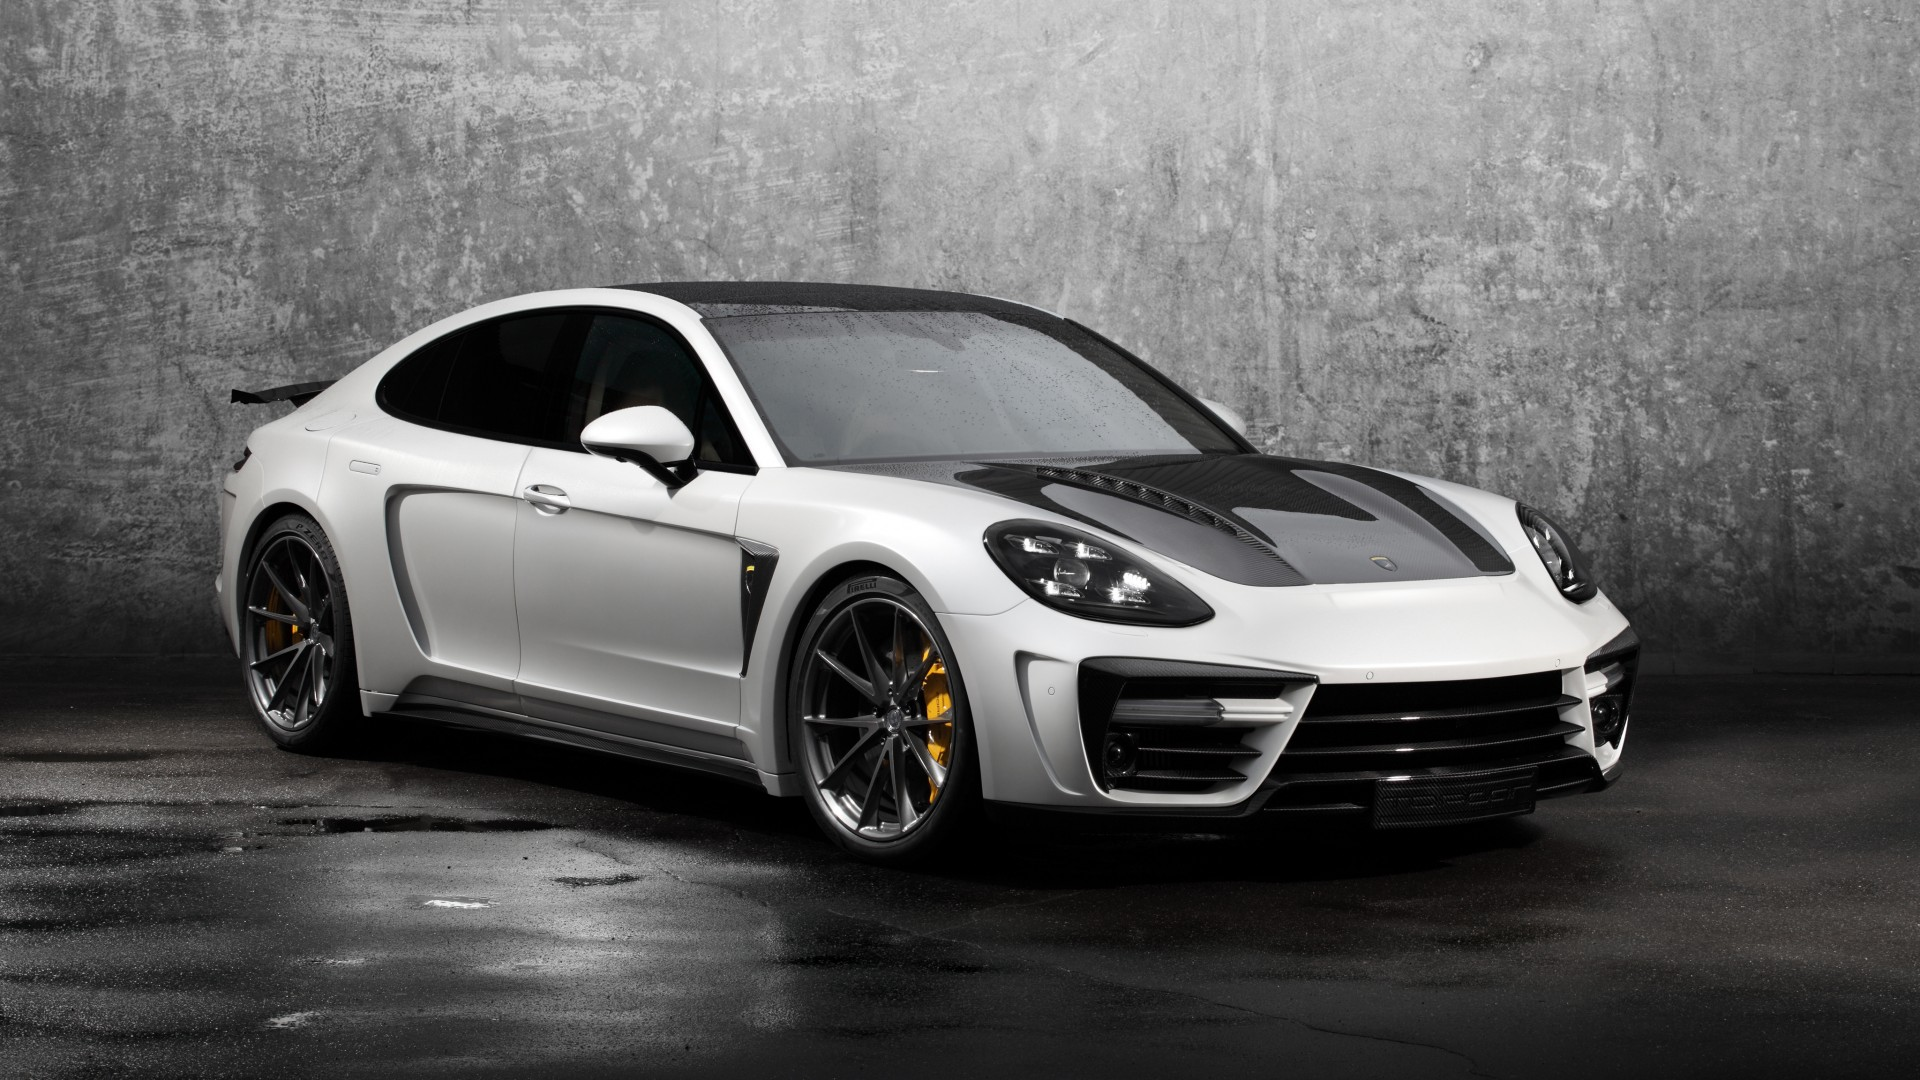 2017 Topcar Porsche Panamera Stingray Gtr 4k Wallpaper Hd Car Wallpapers Id 7916